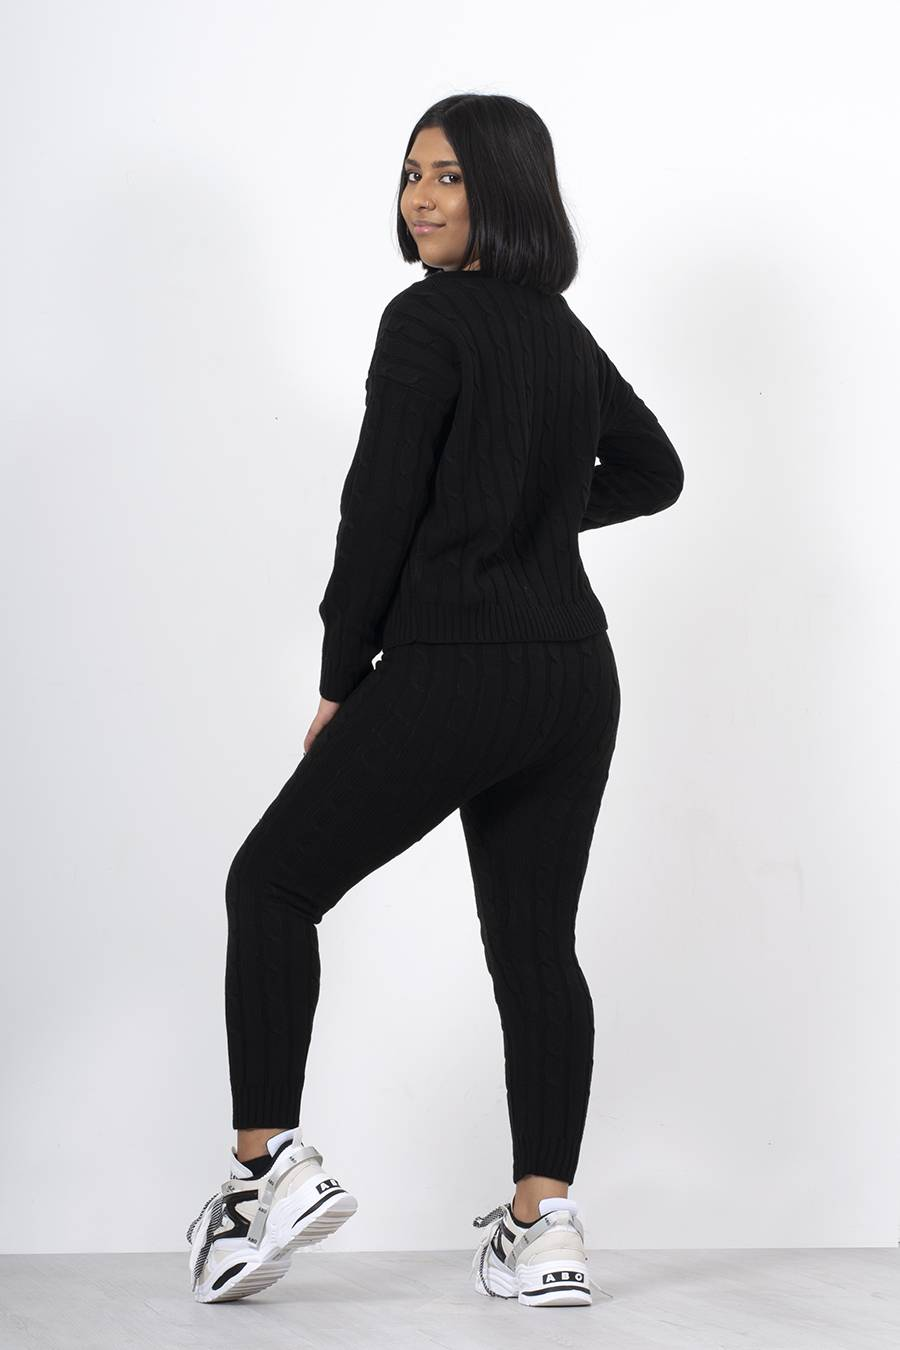 Black Cable Knit Long Sleeve Cropped Top And Legging Lounge Set J5 Fashion